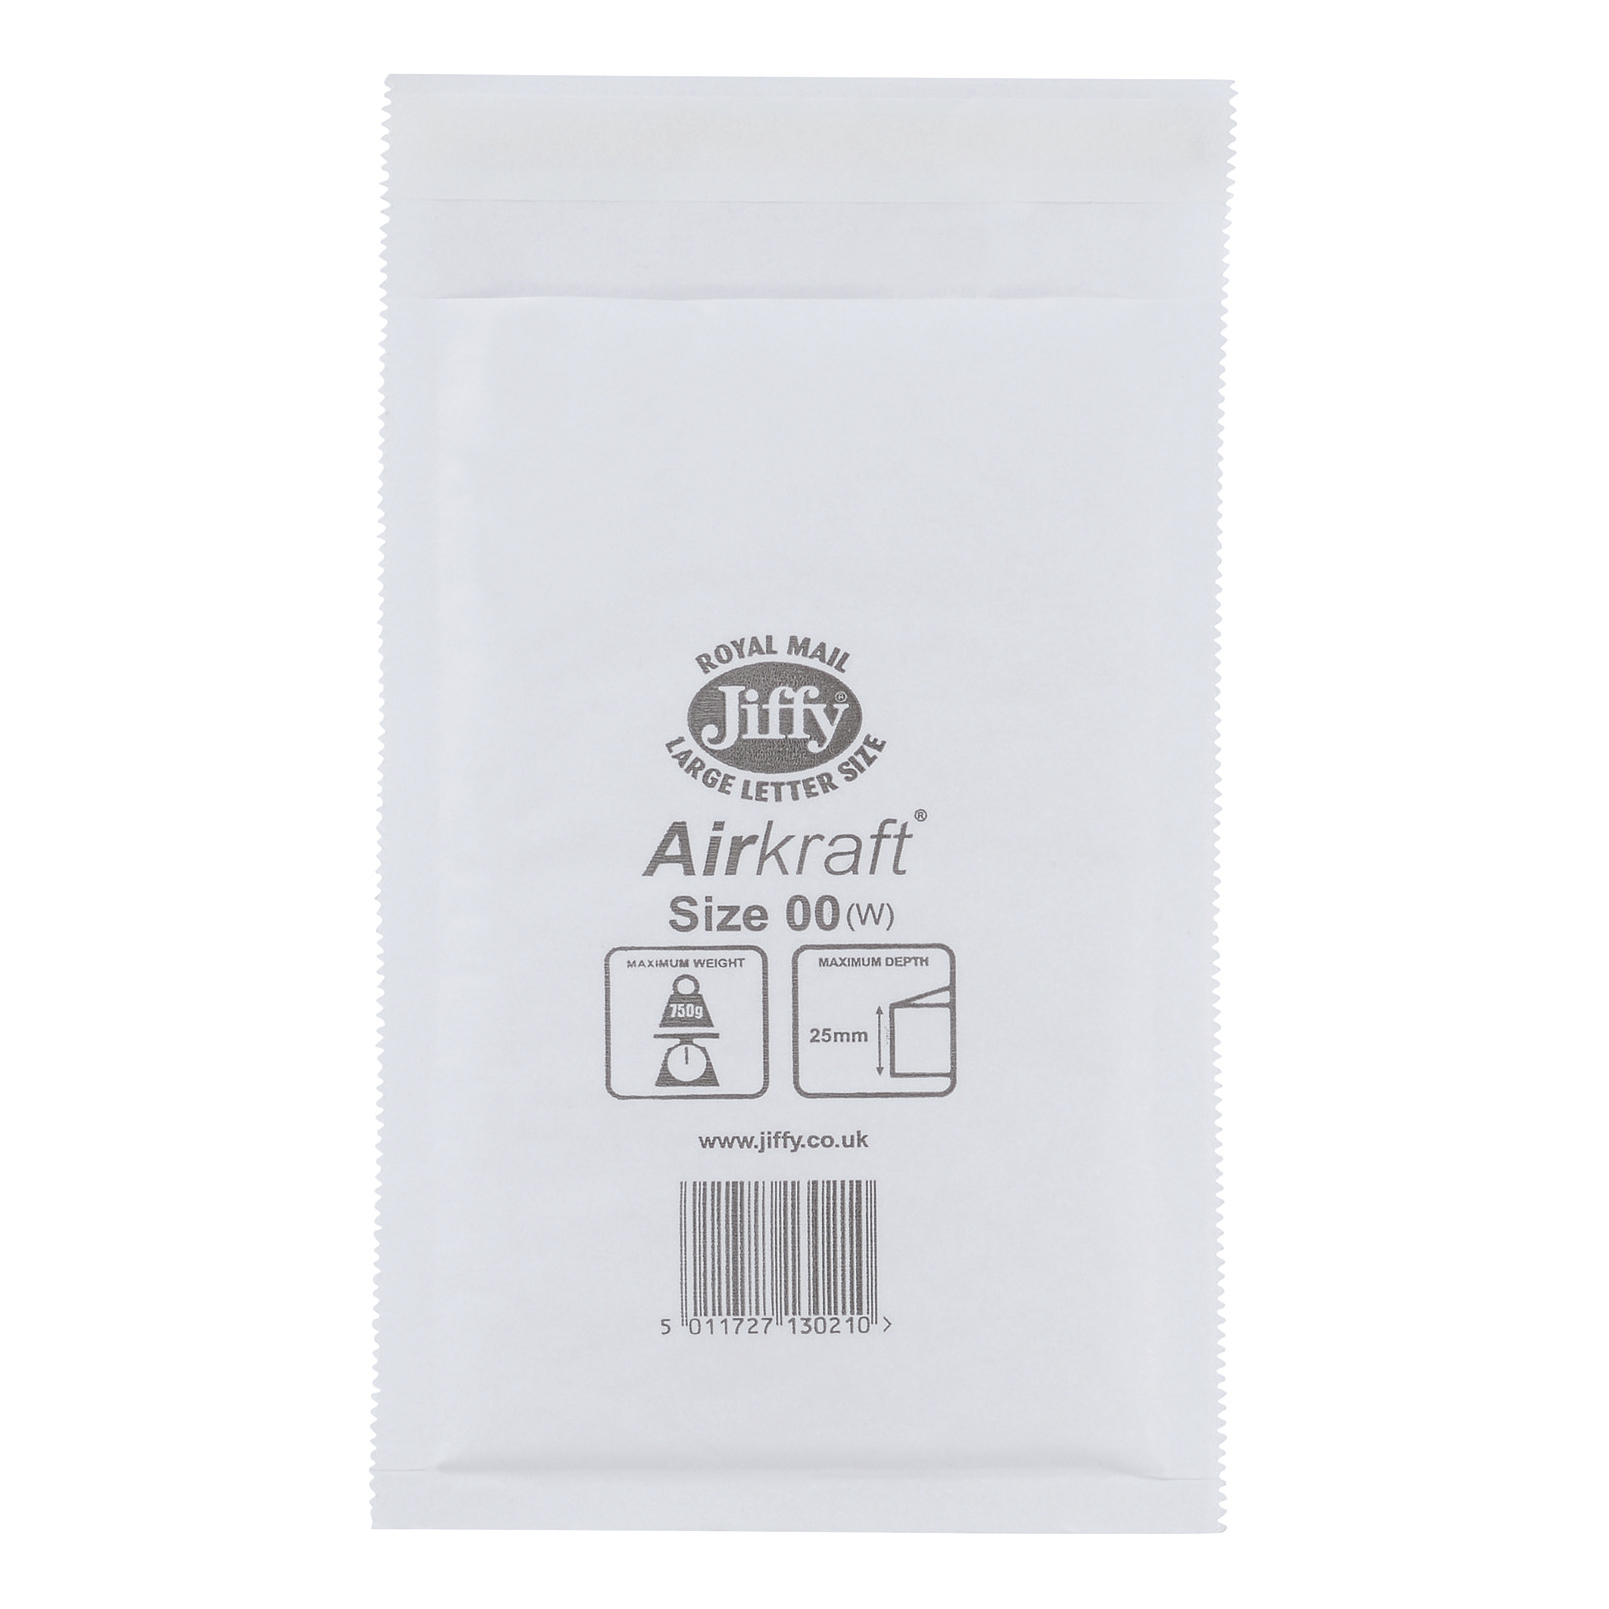 Jiffy Airkraft Postal Bags Bubble-lined Peel and Seal Size 00 115x195mm White Ref JL-00 [Pack 100]